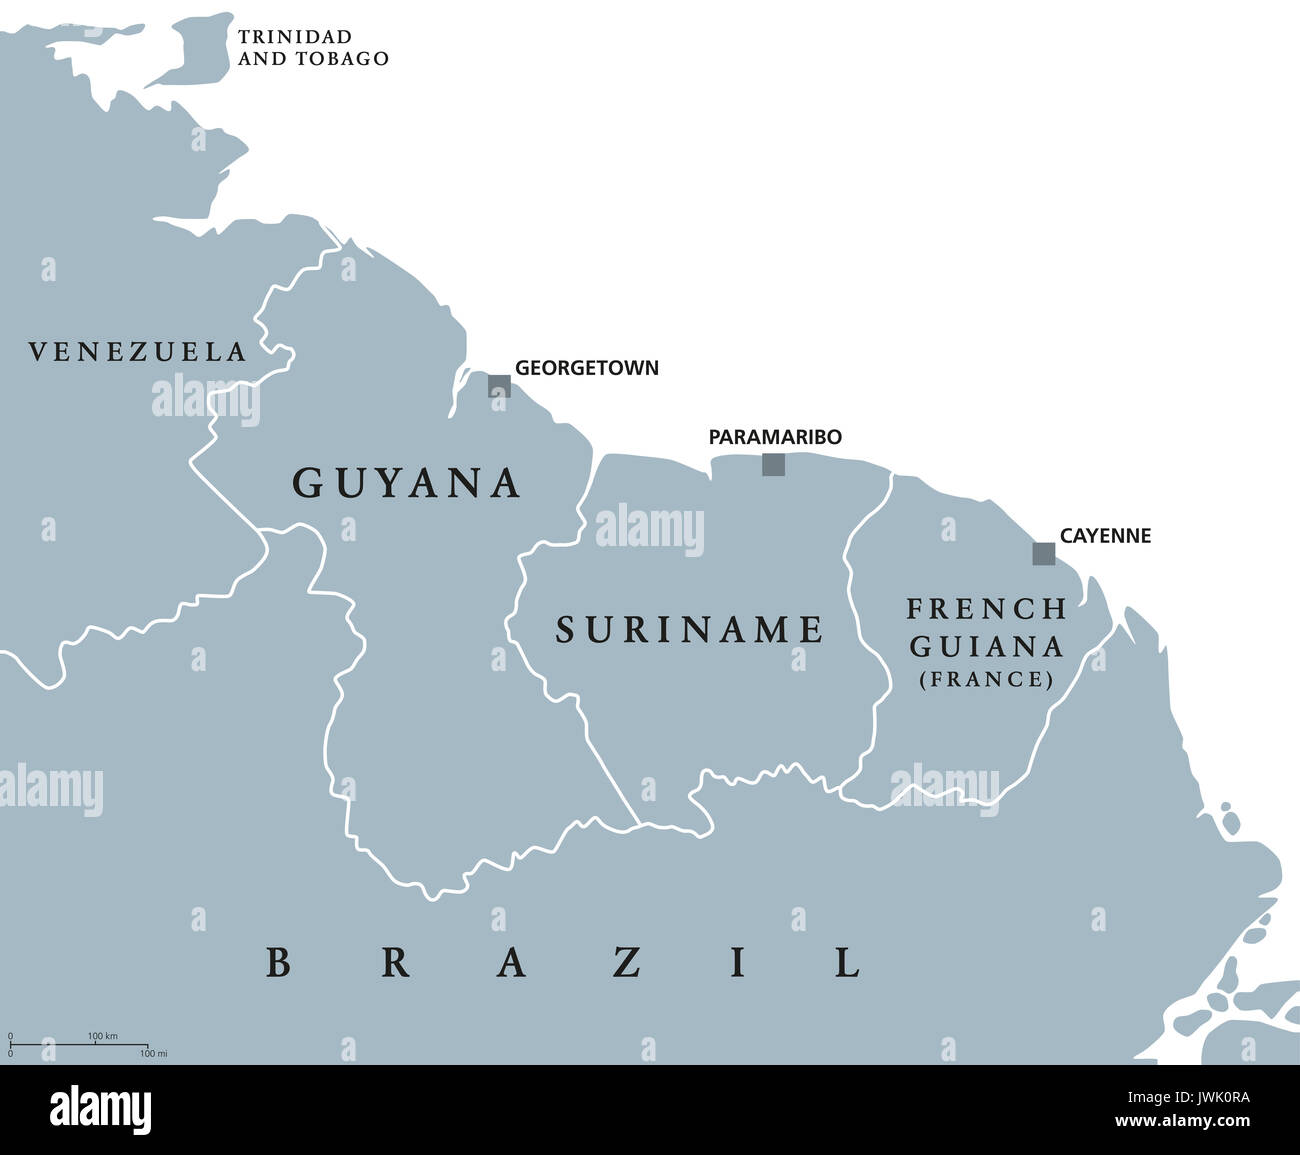 Guyana Suriname and French Guiana political map with capitals Stock